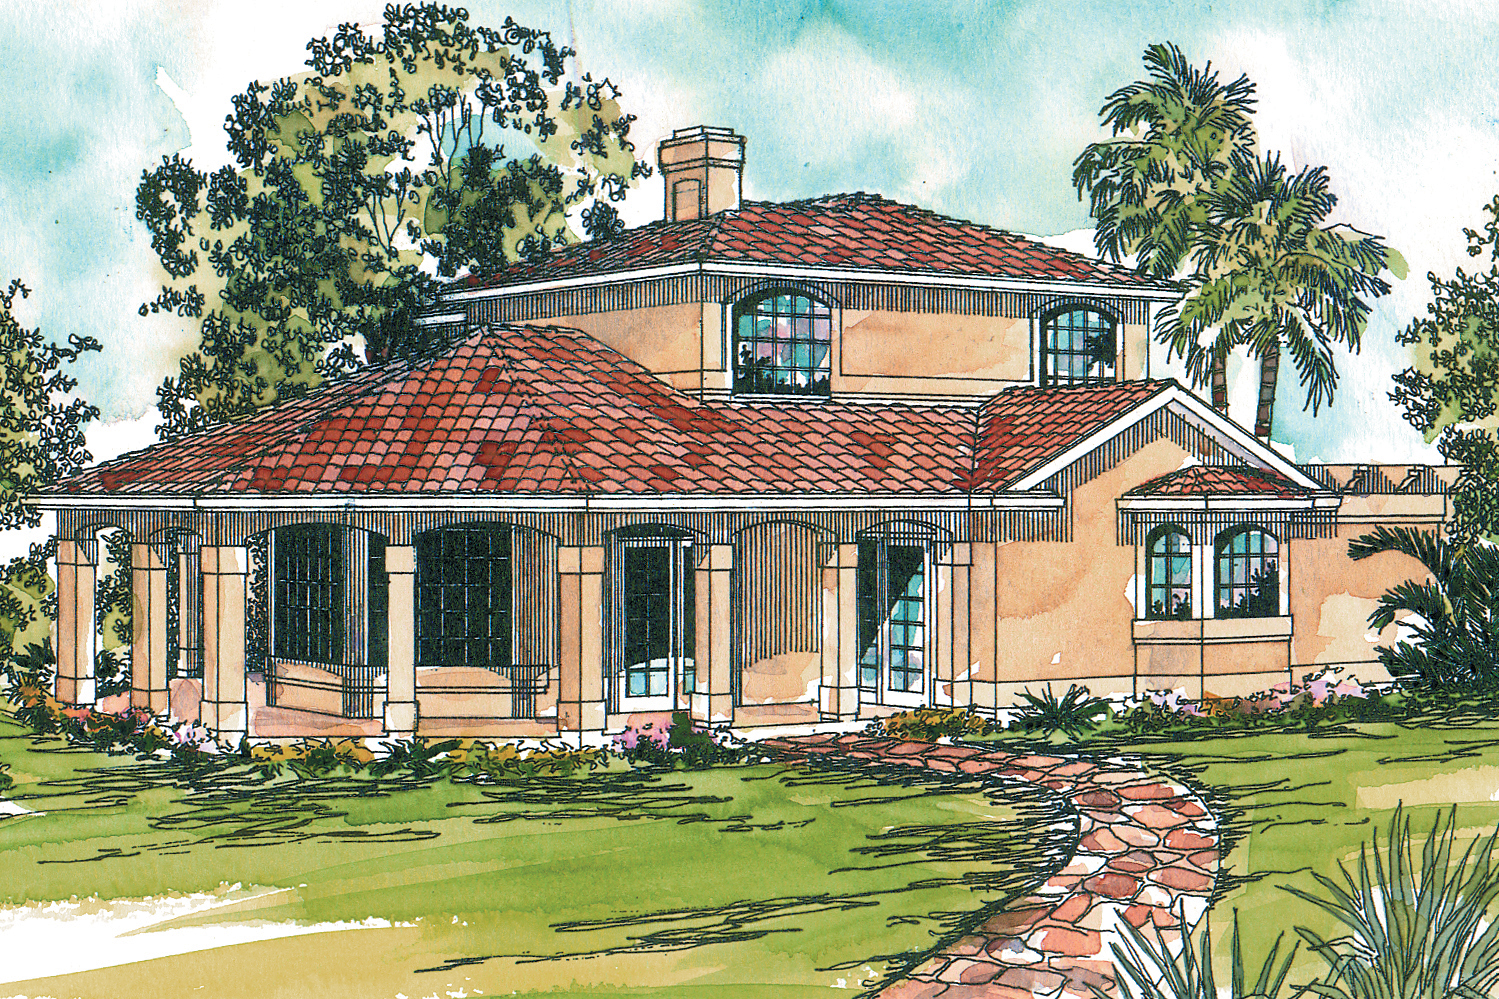 Mediterranean house plans lauderdale 11 037 associated for Mediterranean home plans